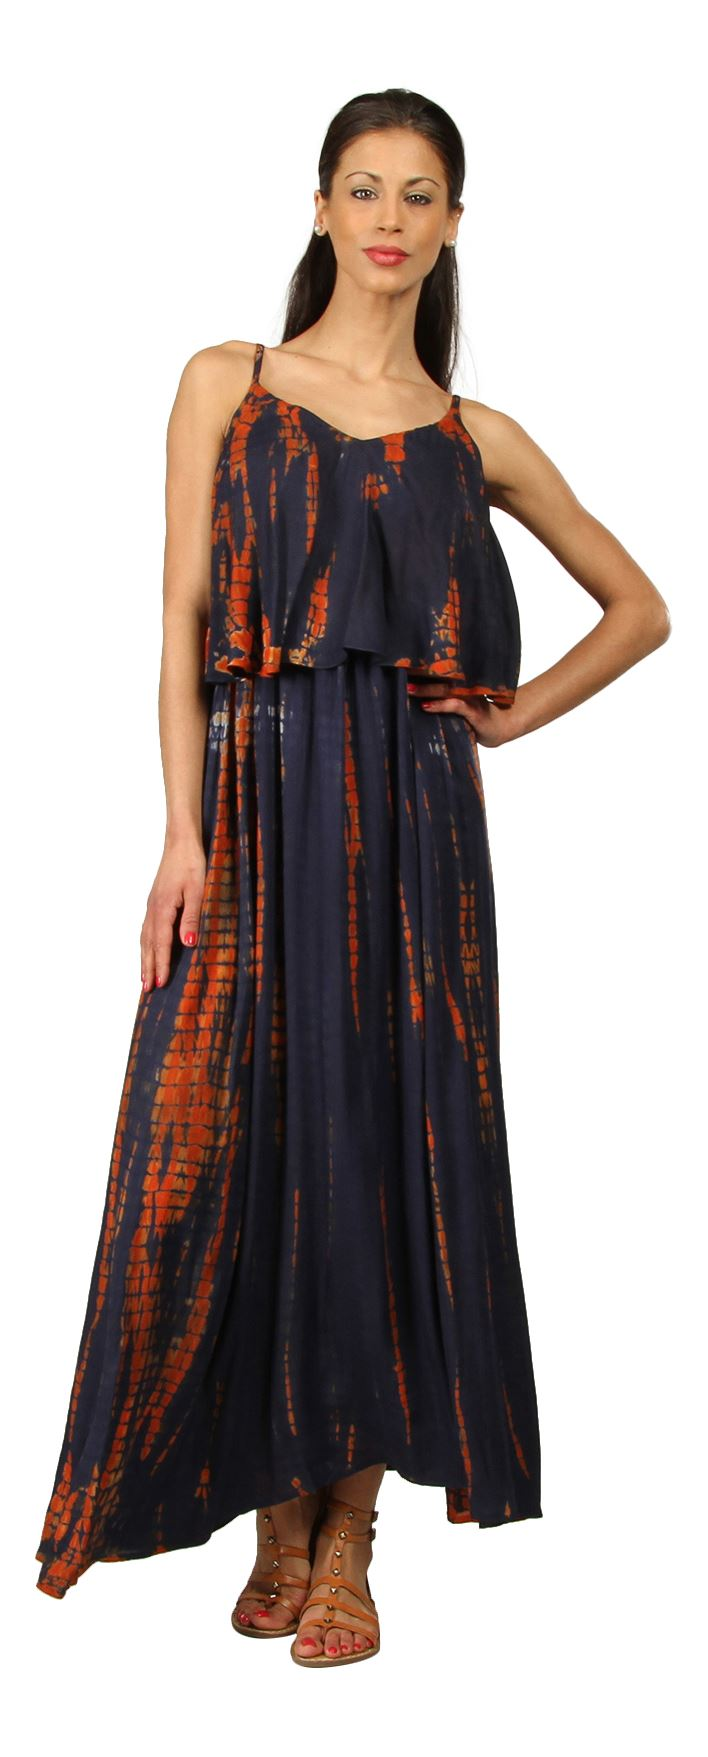 New-Womens-Kushi-Summer-Stylish-Dye-Print-Holiday-Maxi-Dress-Size-10-22